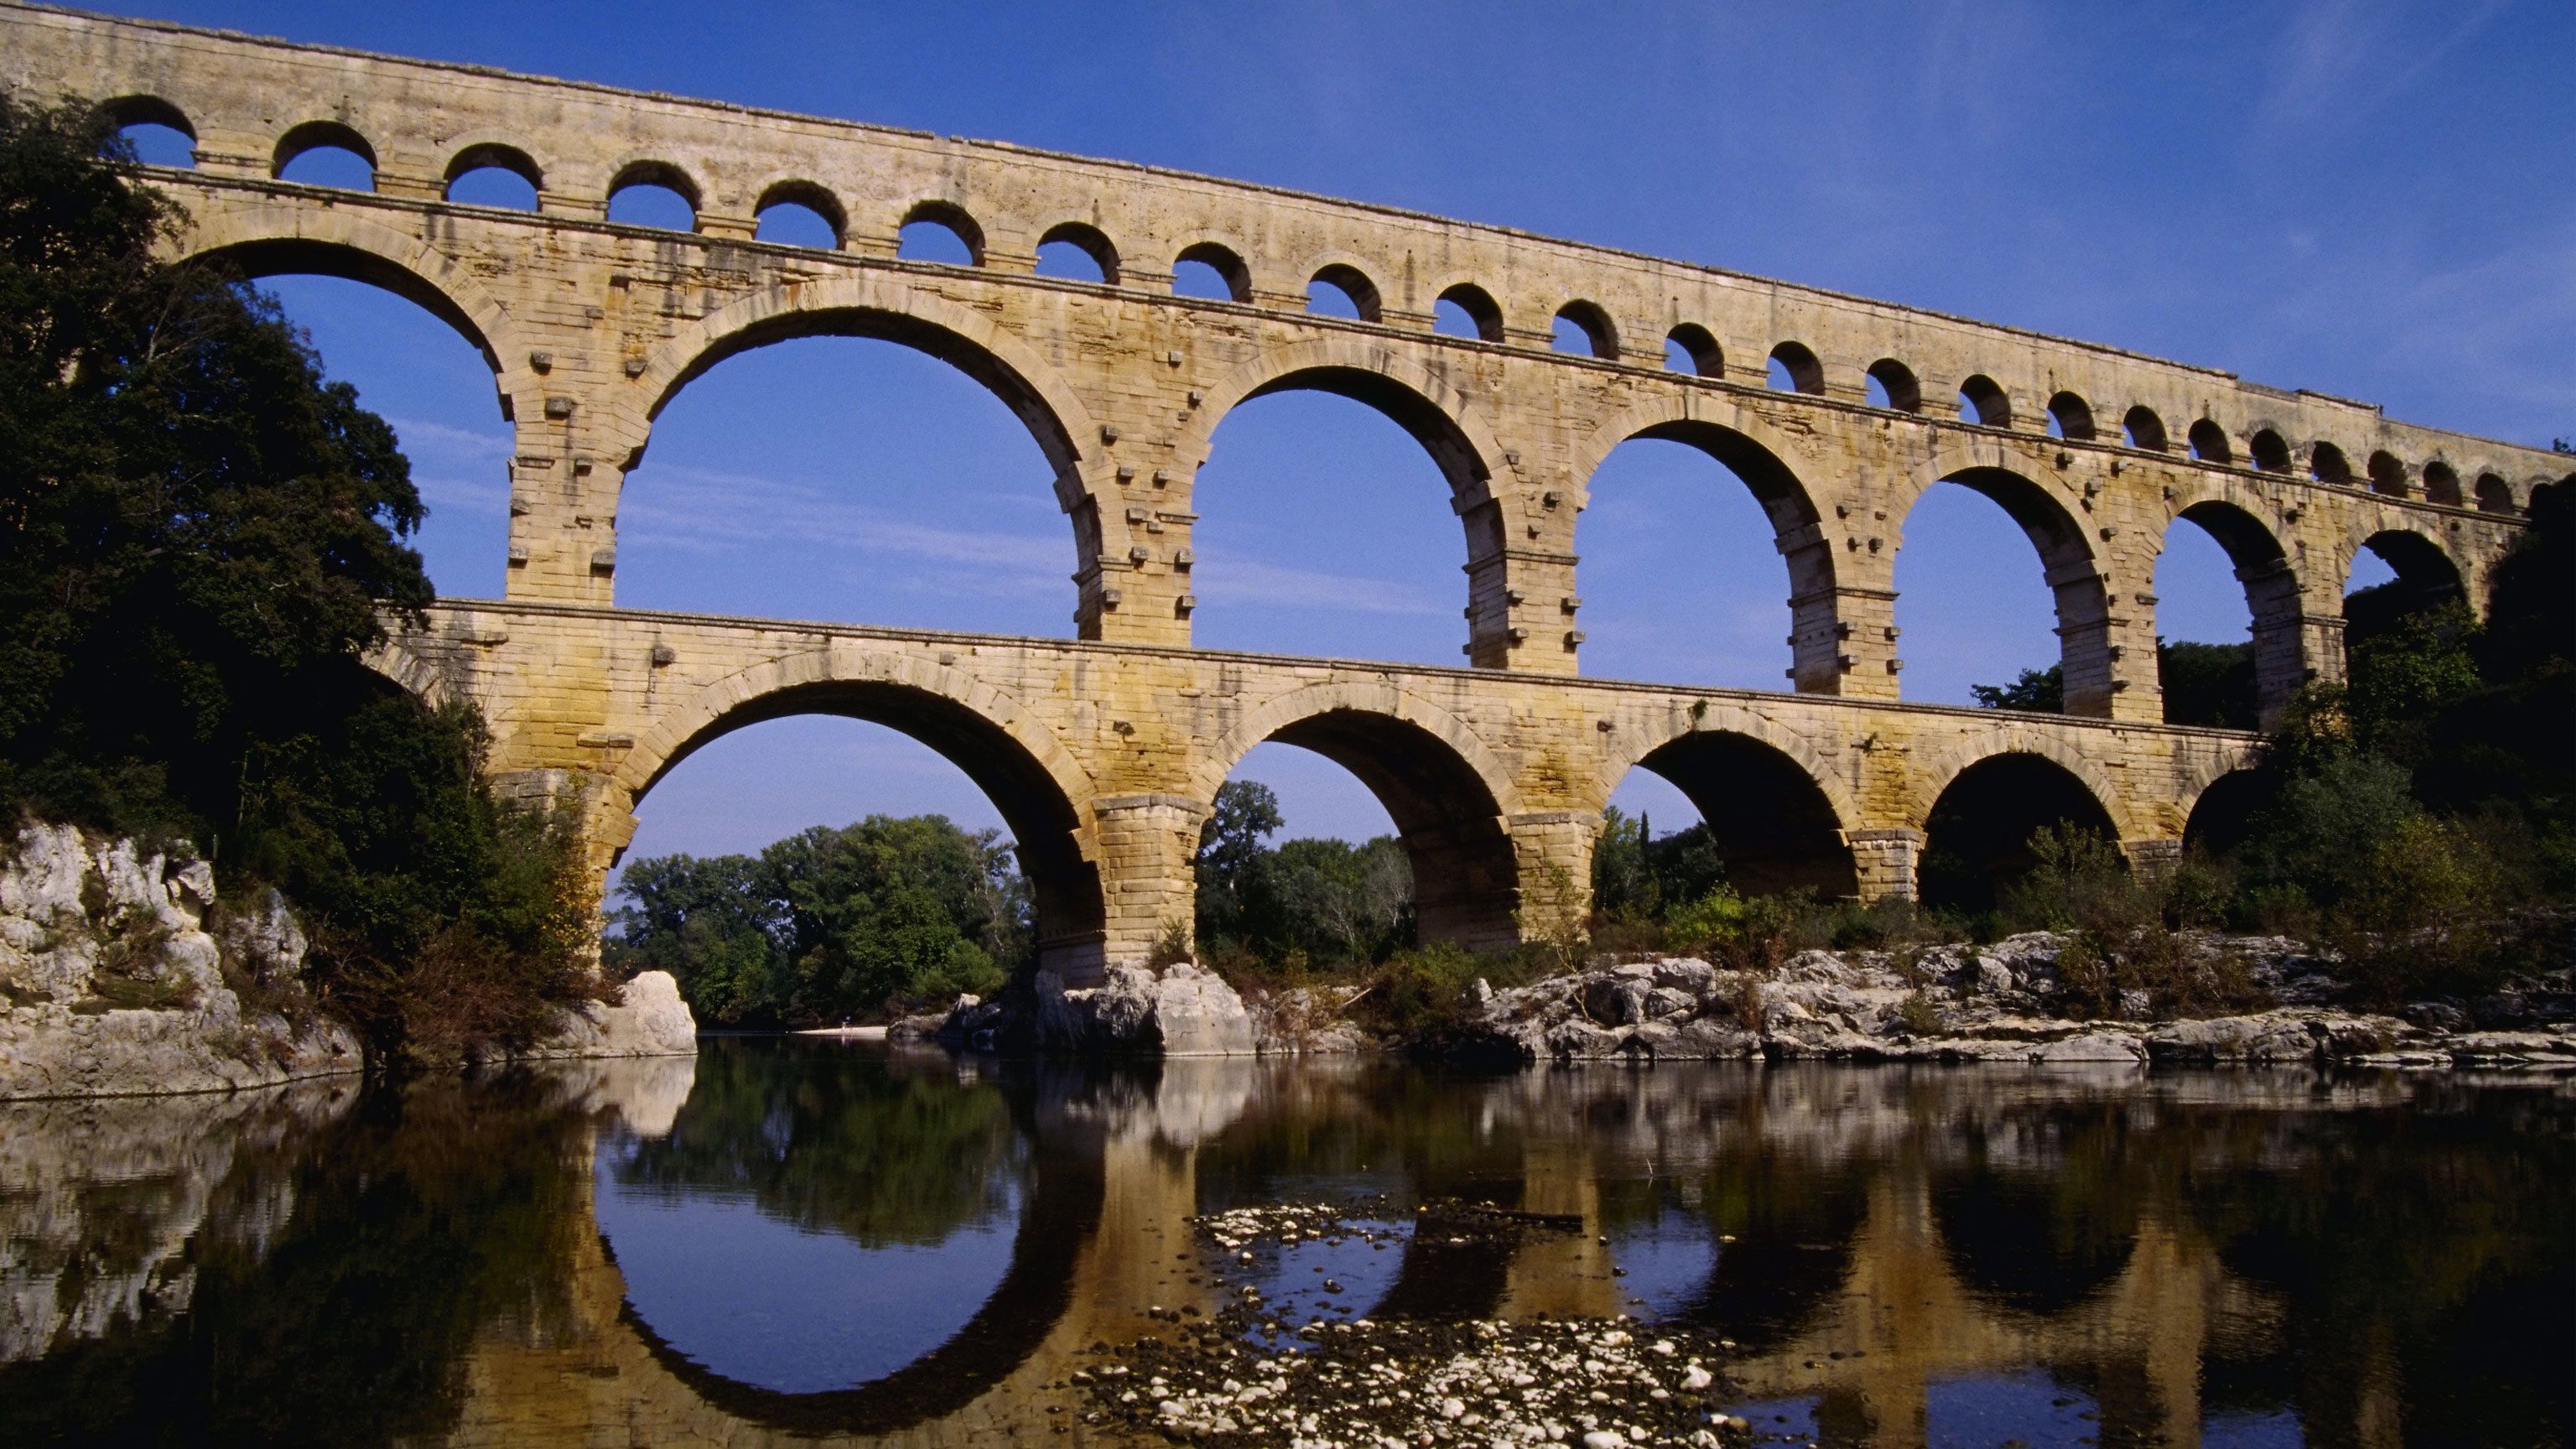 View of the Pont du Gard Aqueduct in Vers-Pont-du-Gard, France